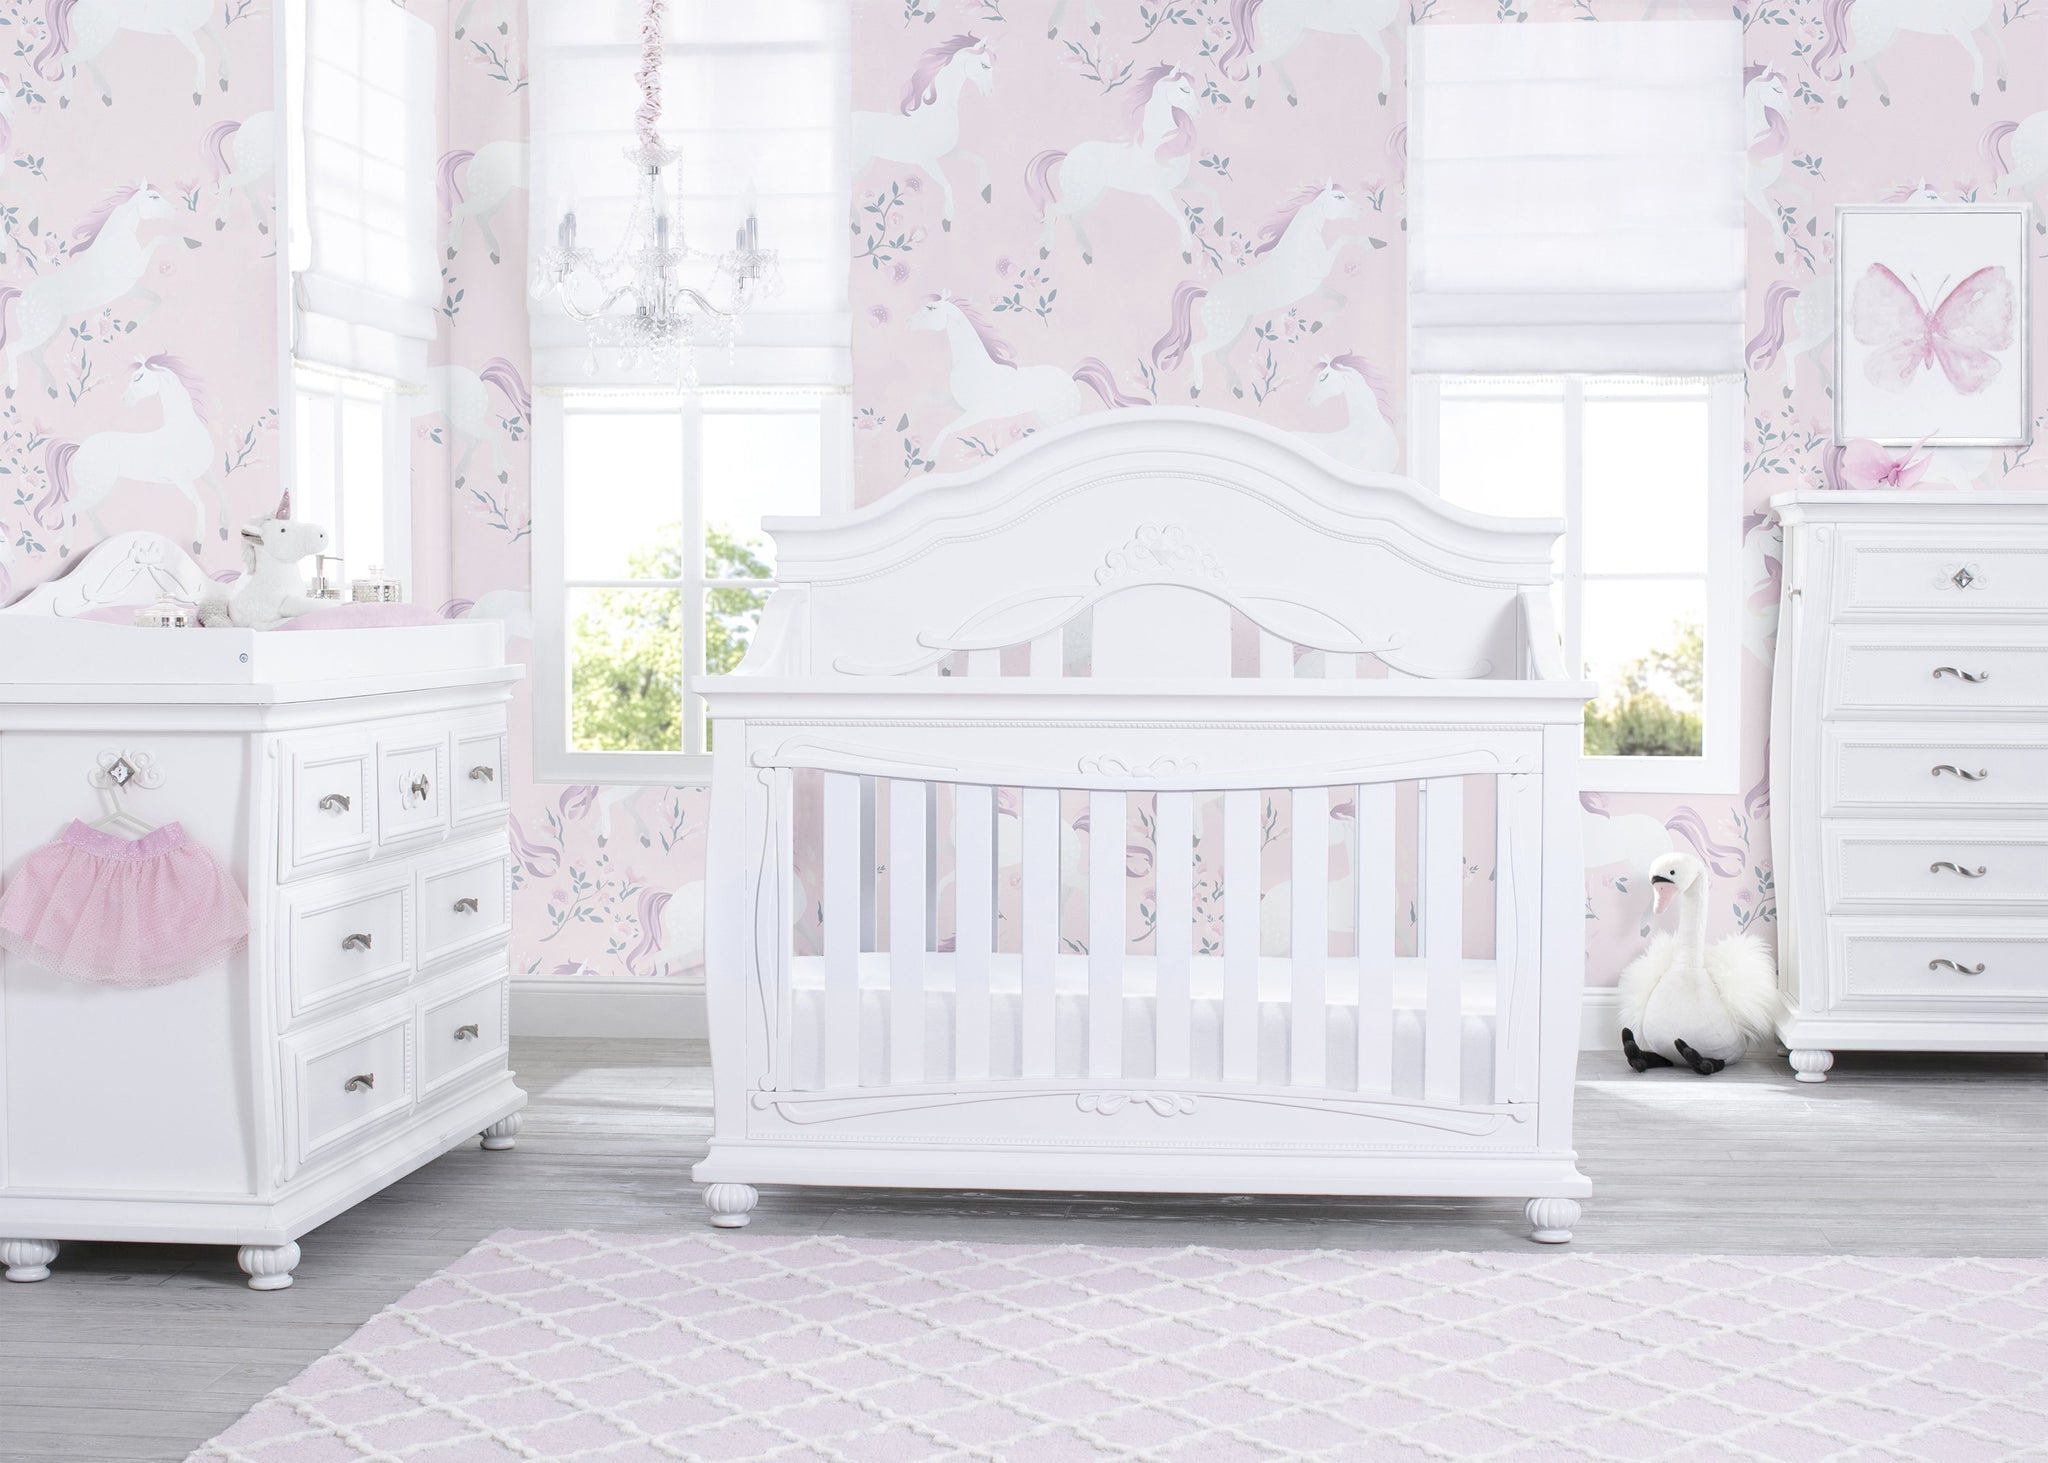 Simmons Kids Fairytale 5-in-1 Convertible Crib with Conversion Rails Bianca White (130), Room View